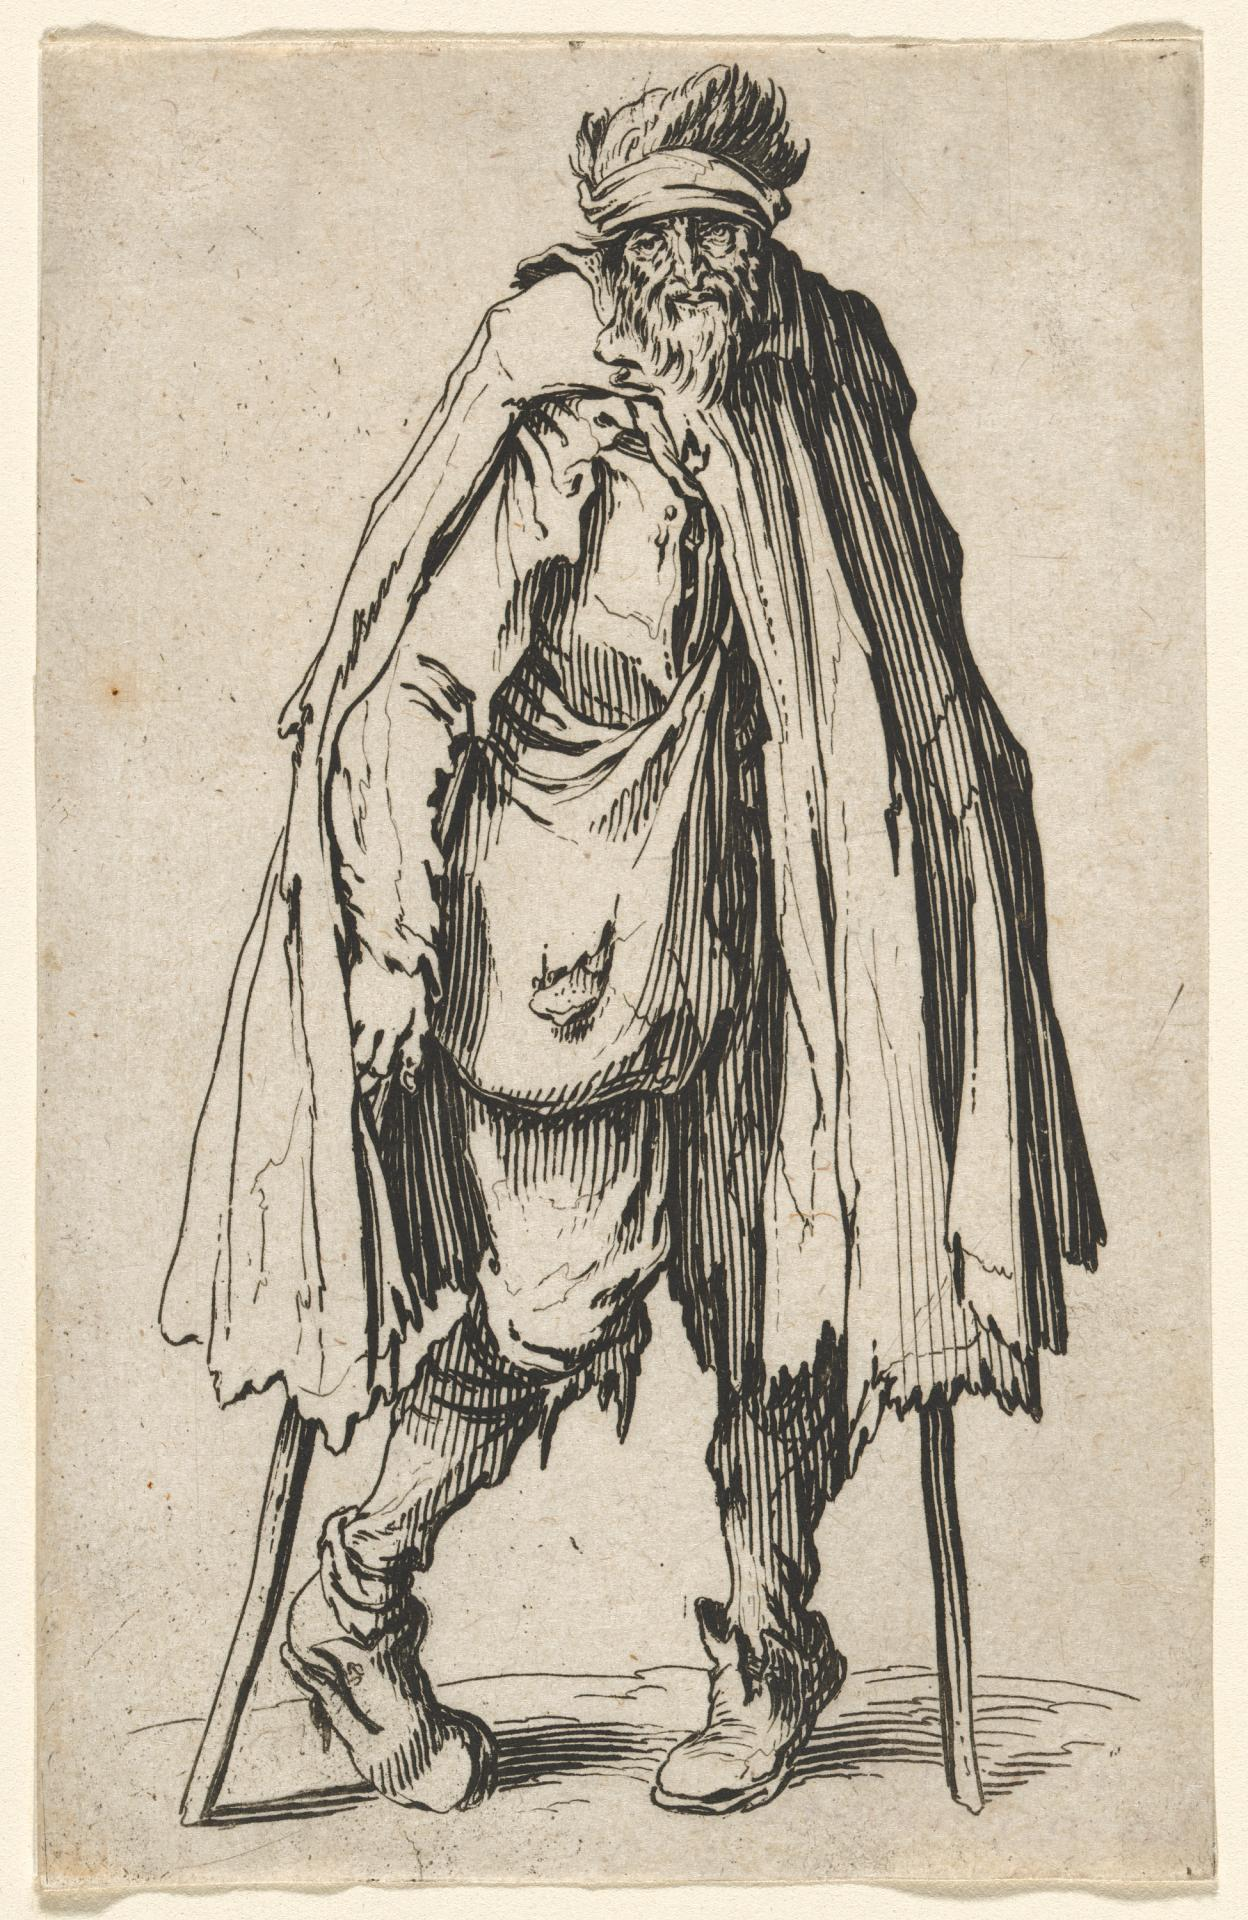 Beggar on crutches with a wallet